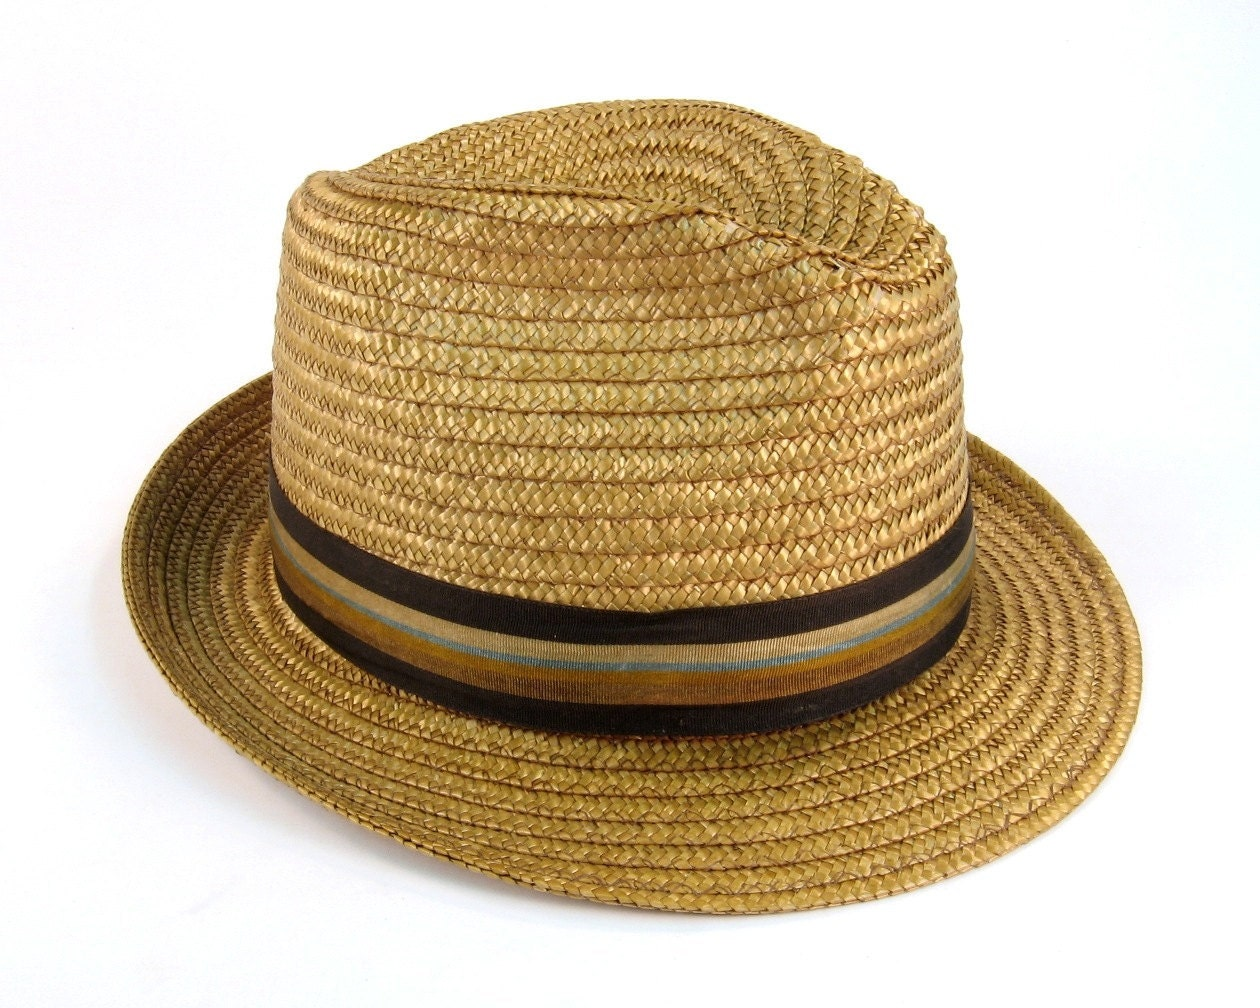 Men's Straw Hats in a wide variety of styles and colors to choose from. Everything from trendy stingy brim straw fedoras to the classic and timeless styling of the Panama fedora. You will find many straw hats for men at Village Hat Shop.